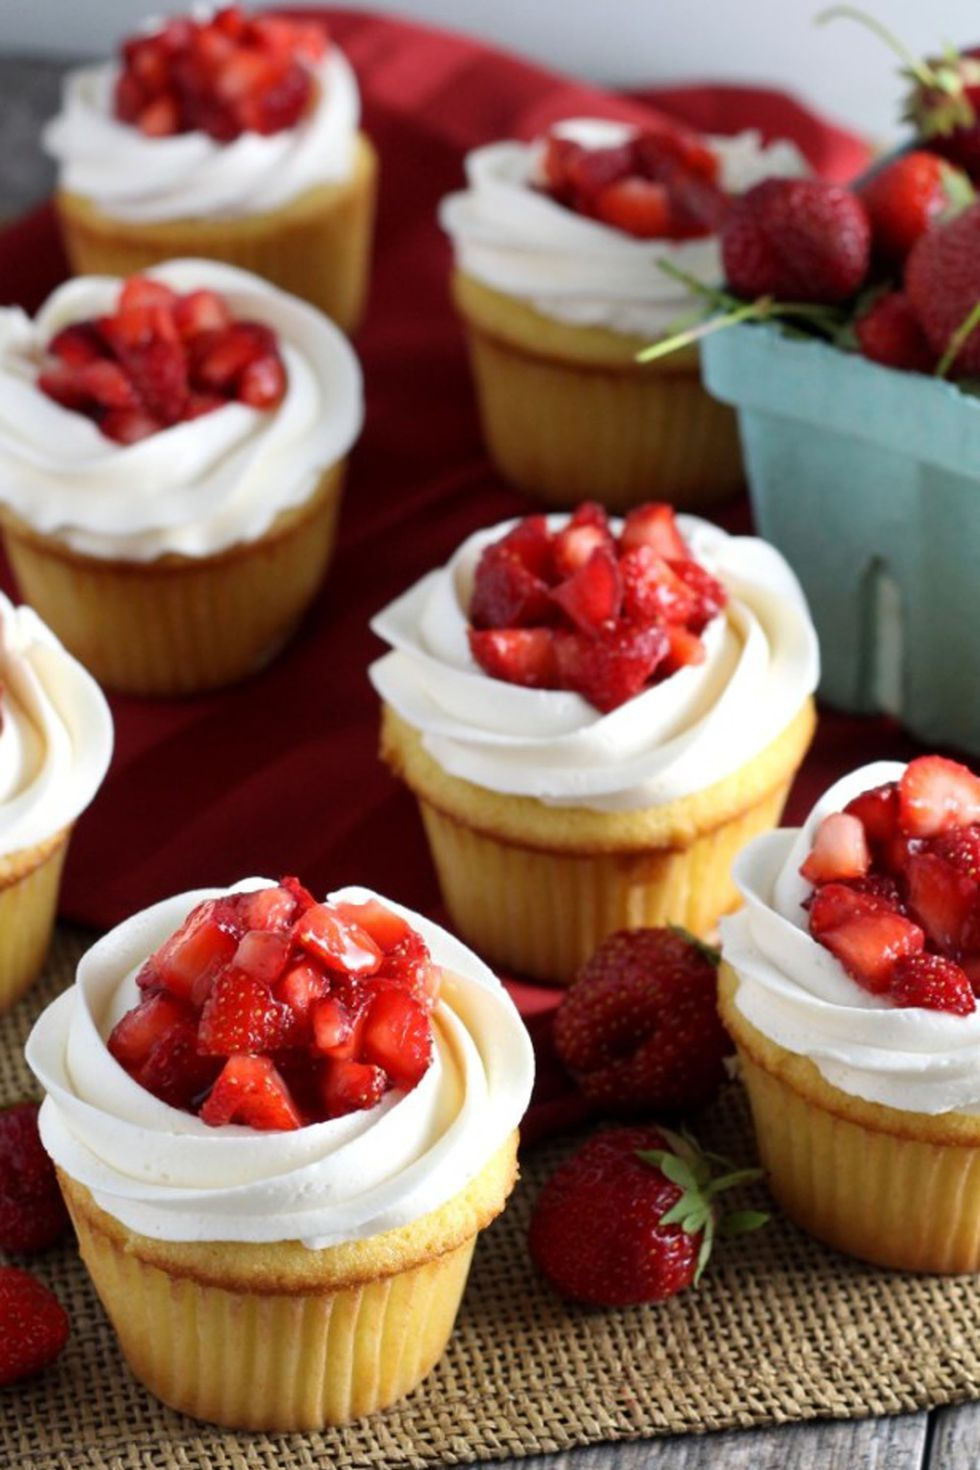 Any of These 15 Cupcake Recipes Will Look Stunning on Your Easter Table